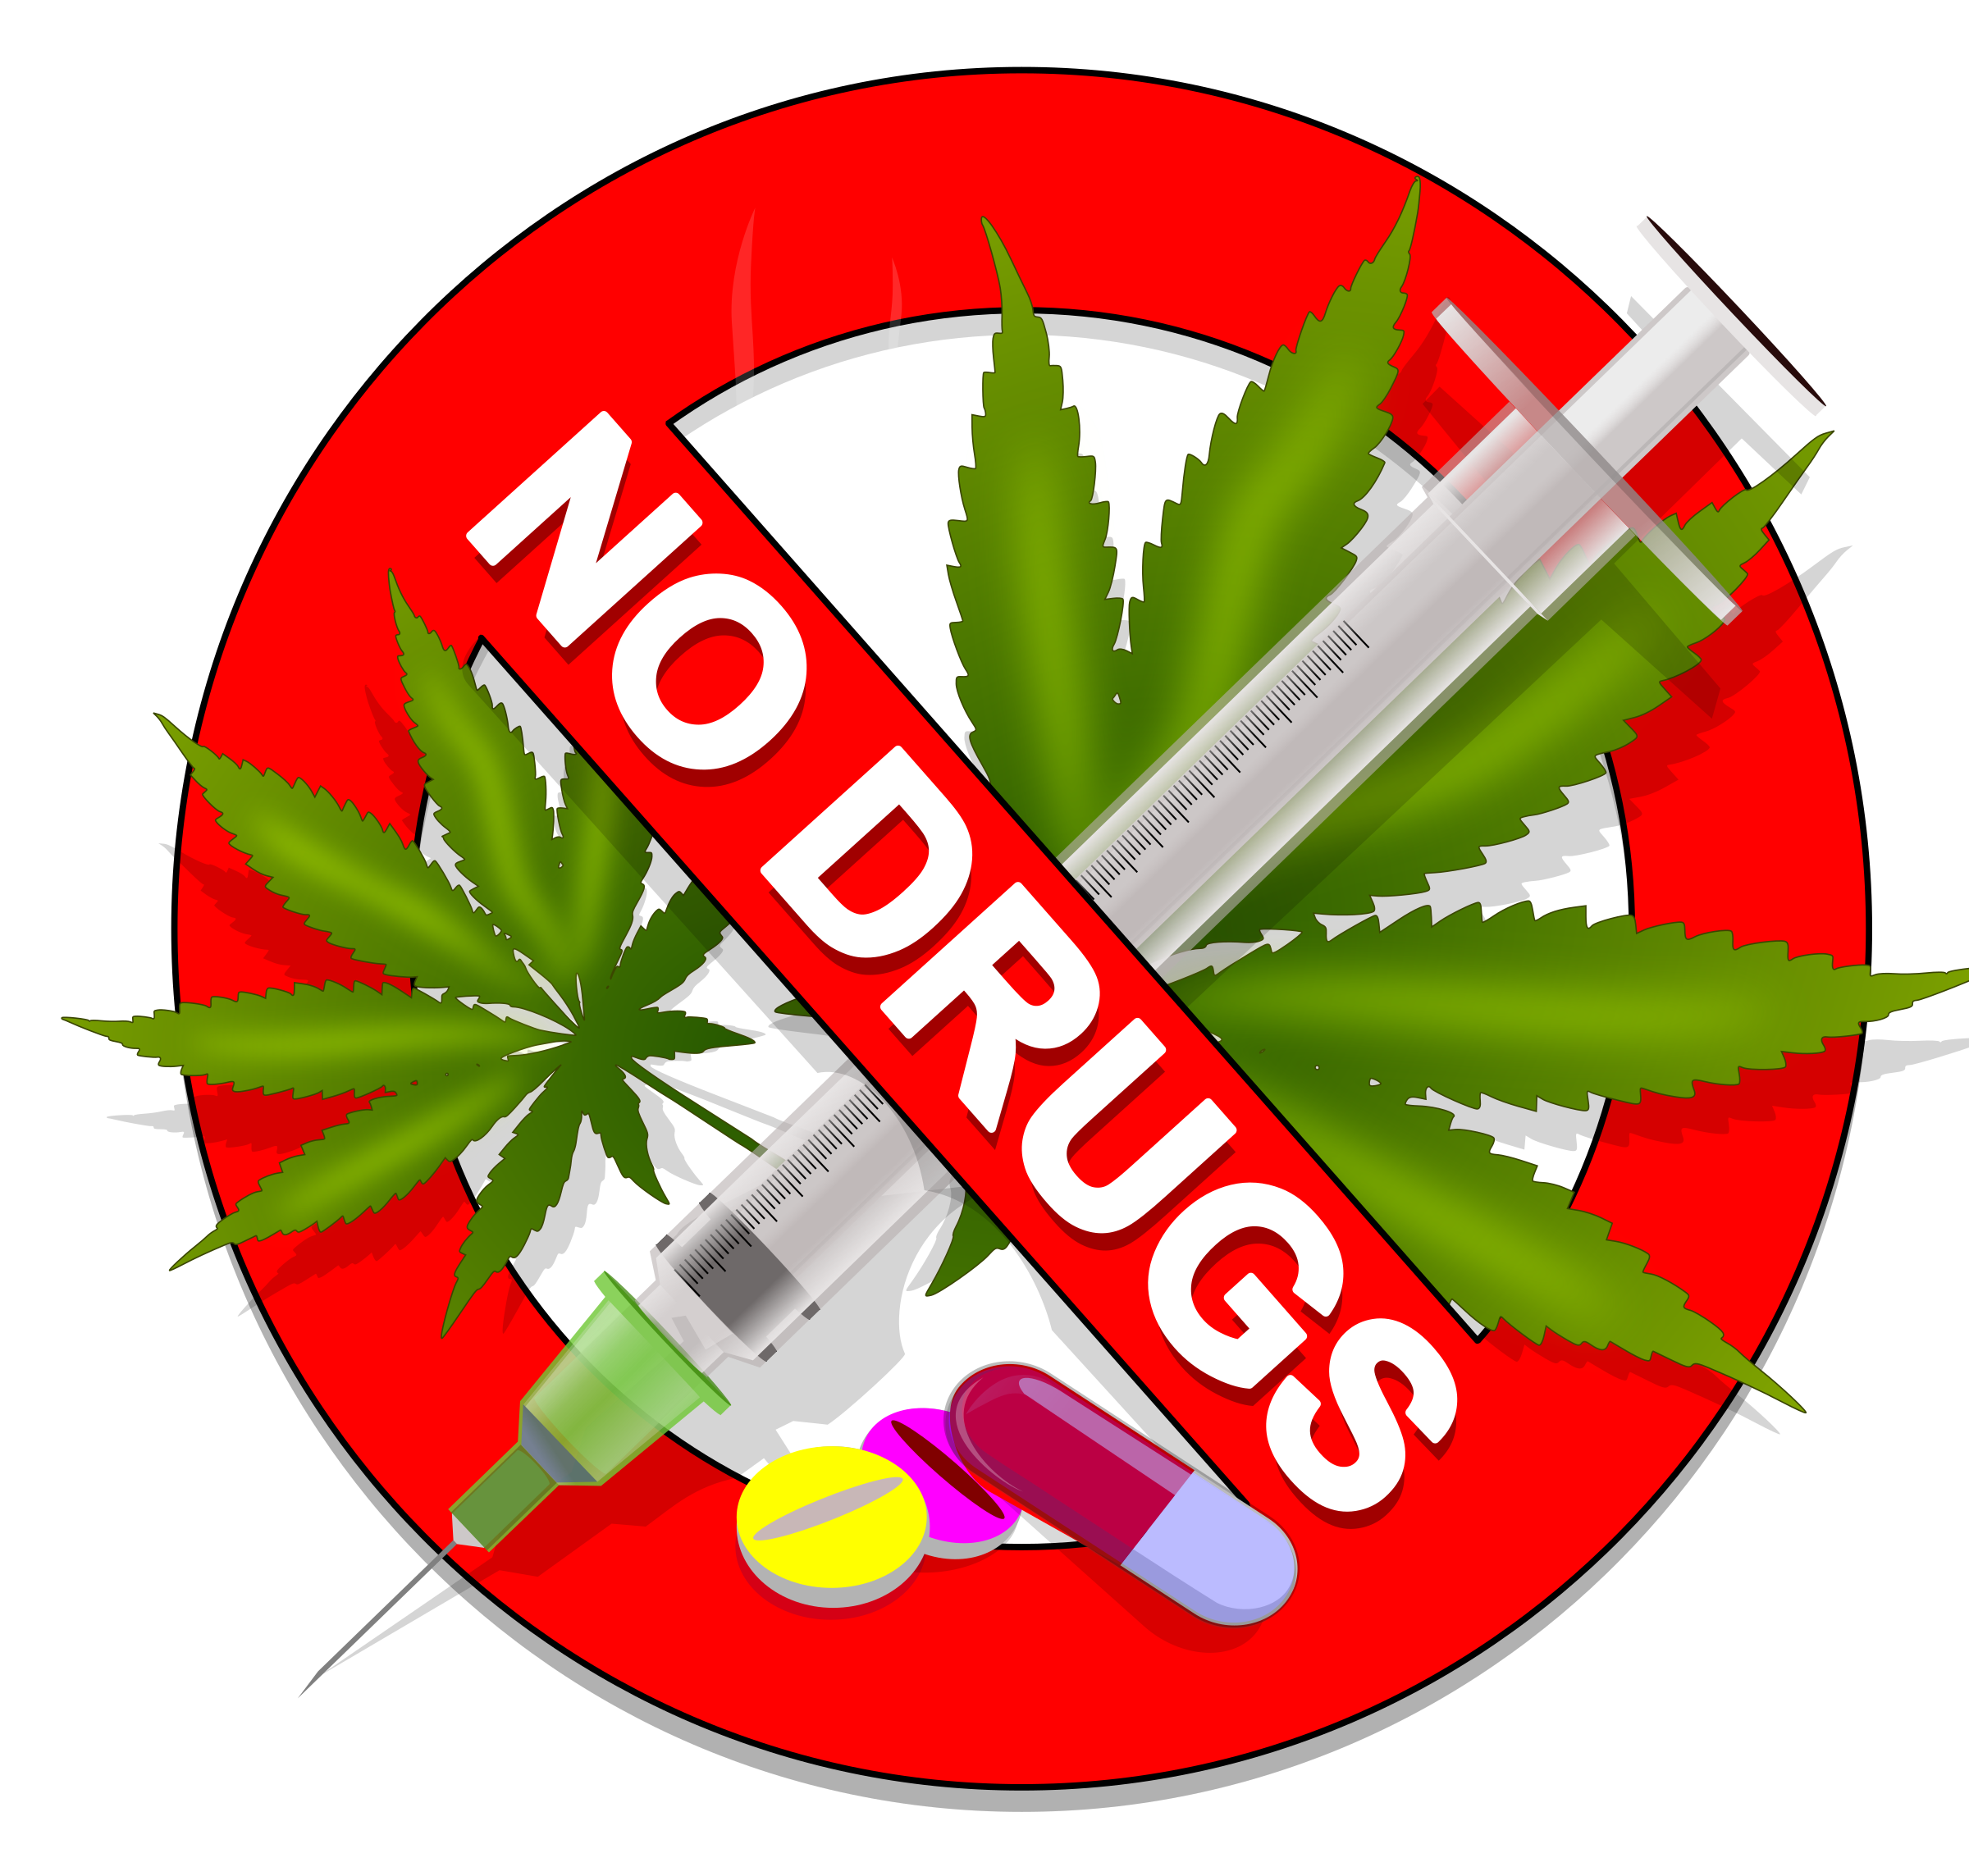 This free Icons Png design of No Drugs: Weed, Speed or Pills! - PNG Drugs